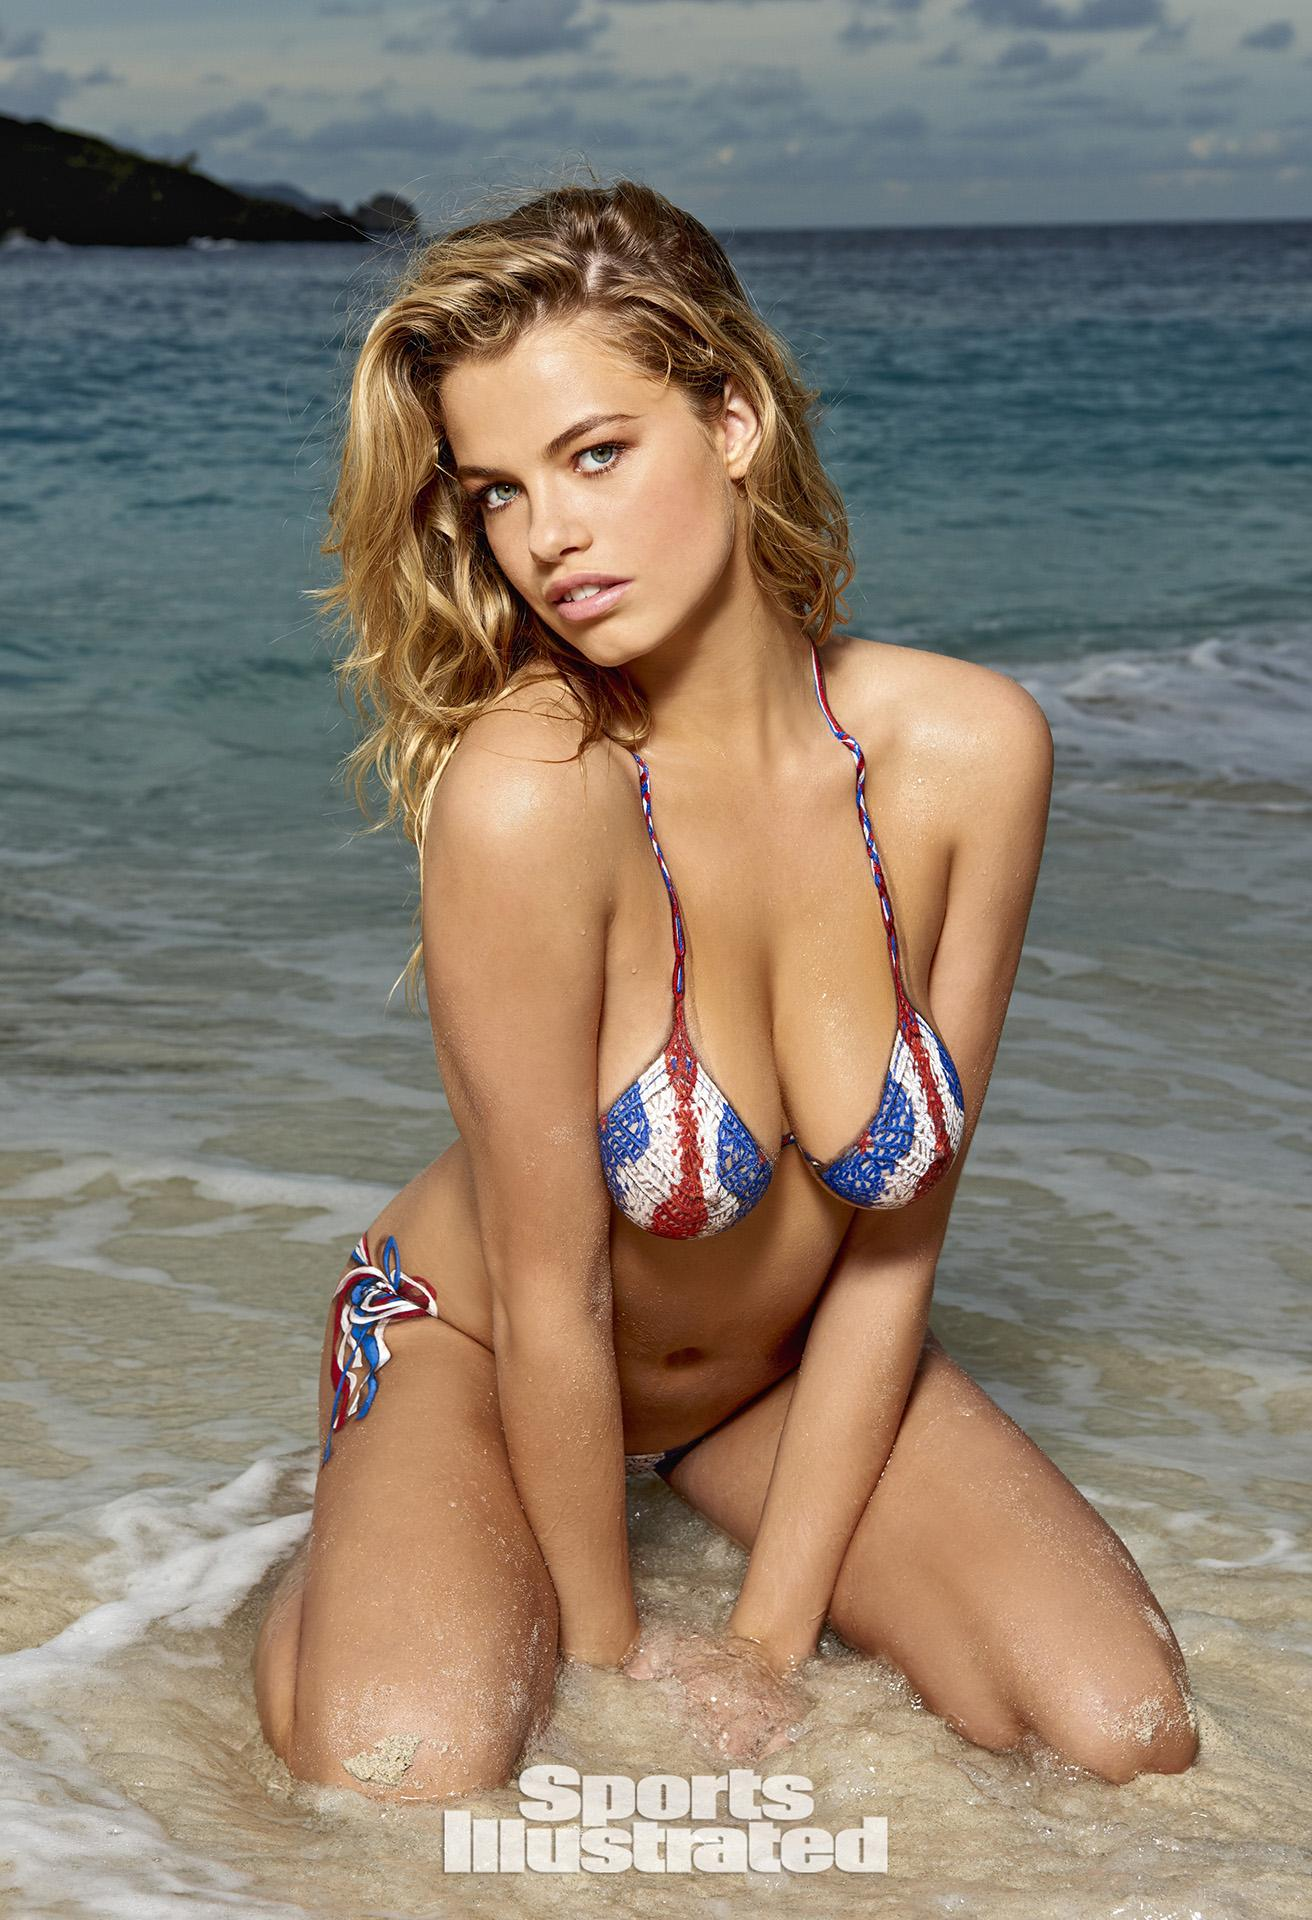 Hailey Clauson Swimsuit Body Paint Photos, Sports Illustrated Swimsuit ...